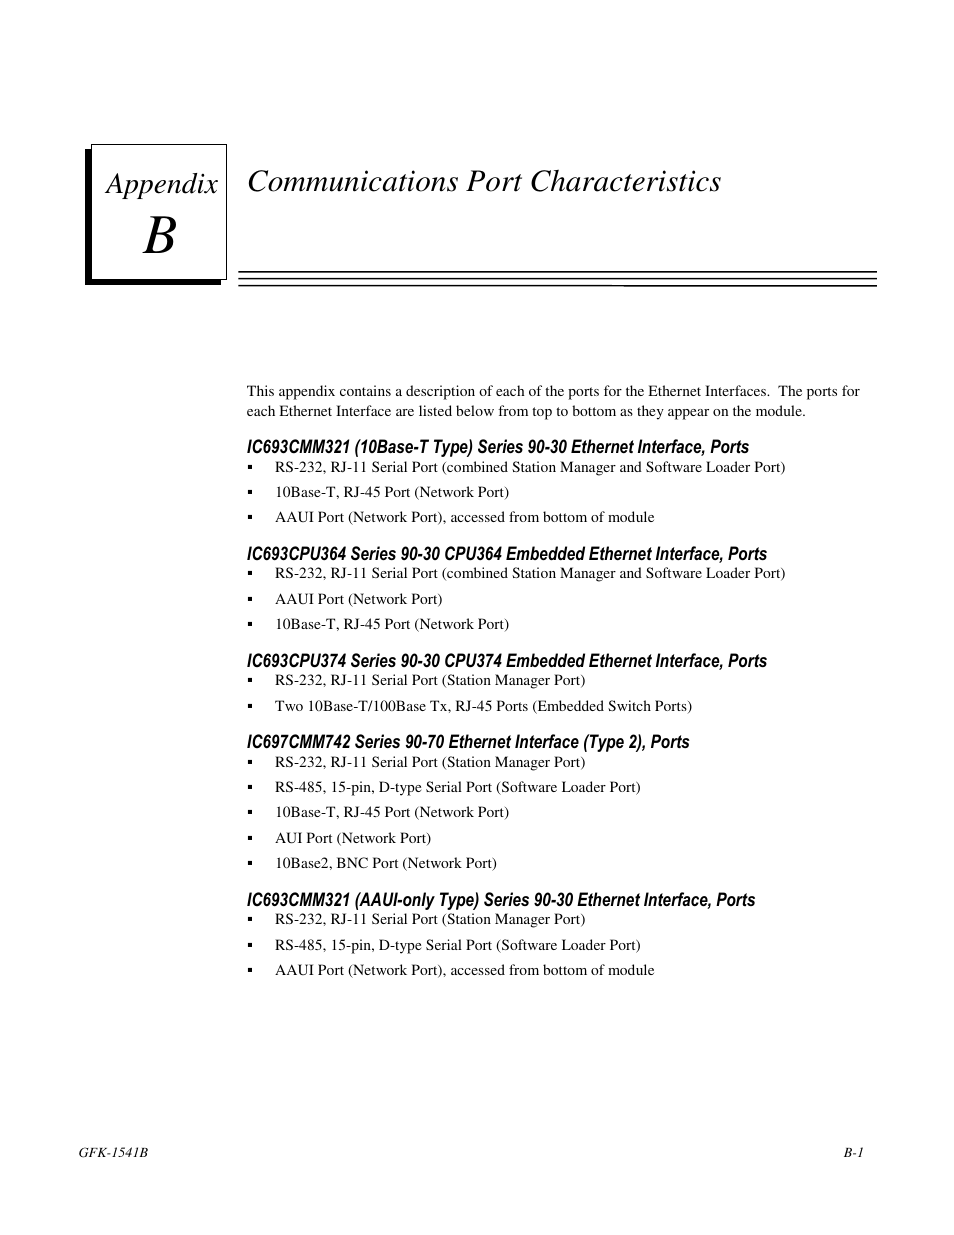 Port Network Communications Port Characteristics Appendix Ge Gfk 1541b User